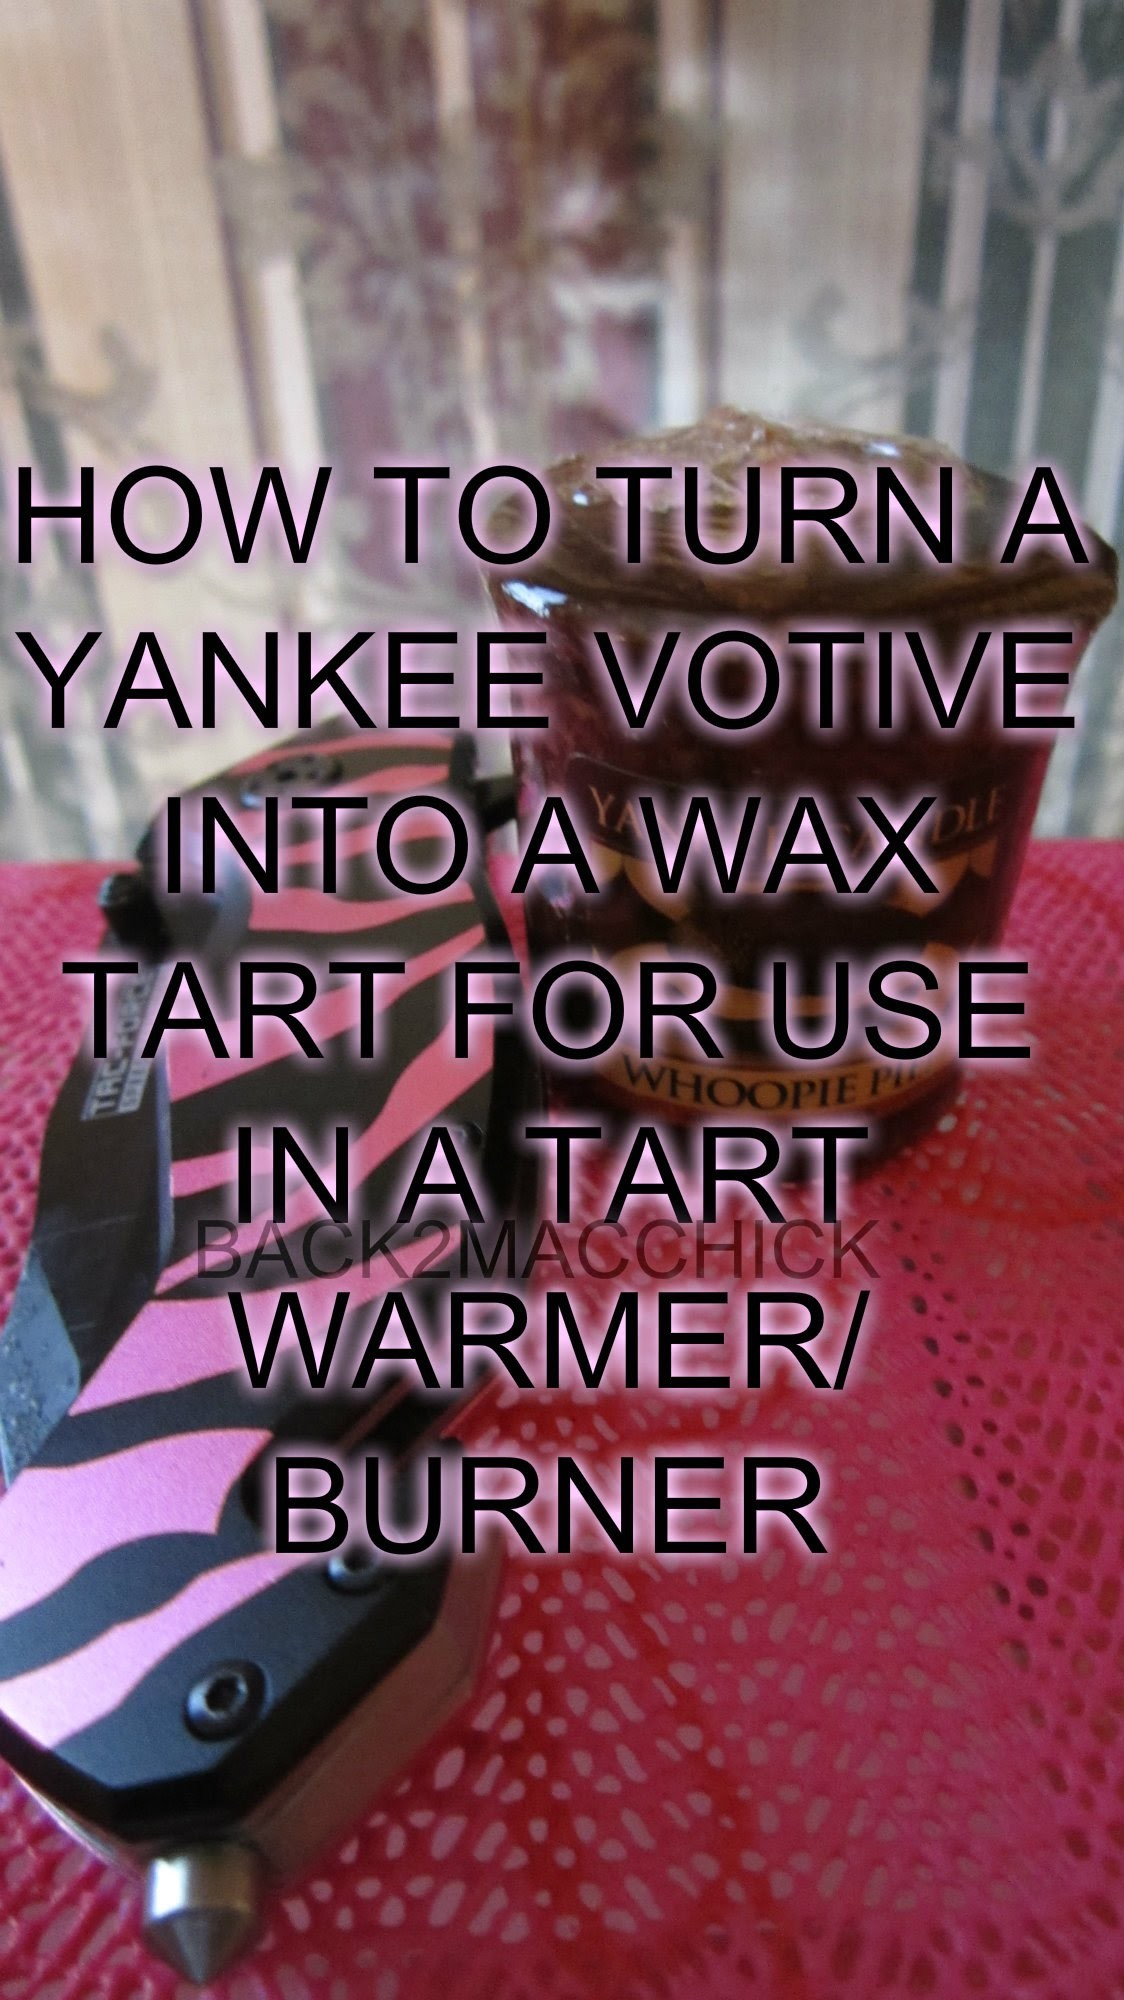 DIY: HOW TO TURN YOUR YANKEE CANDLE VOTIVE INTO A WAX TART TO USE IN YOUR TART WARMER